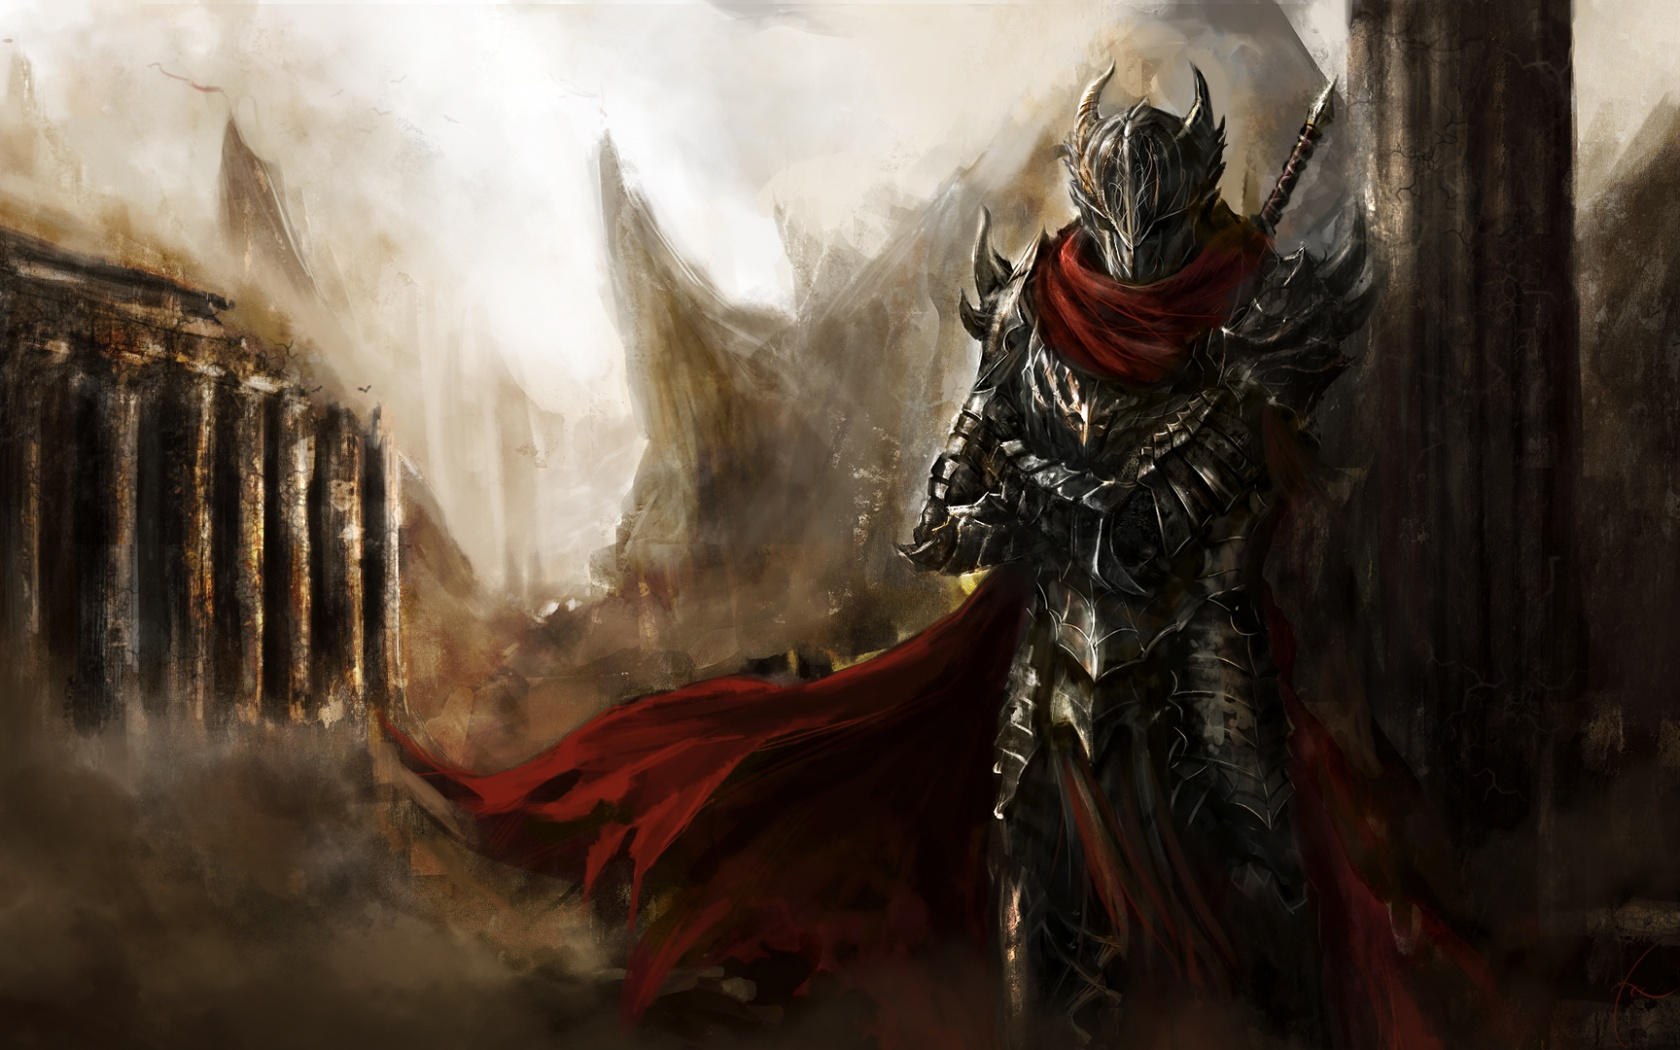 Dark warrior artwork Wallpaper in 1680x1050 Widescreen